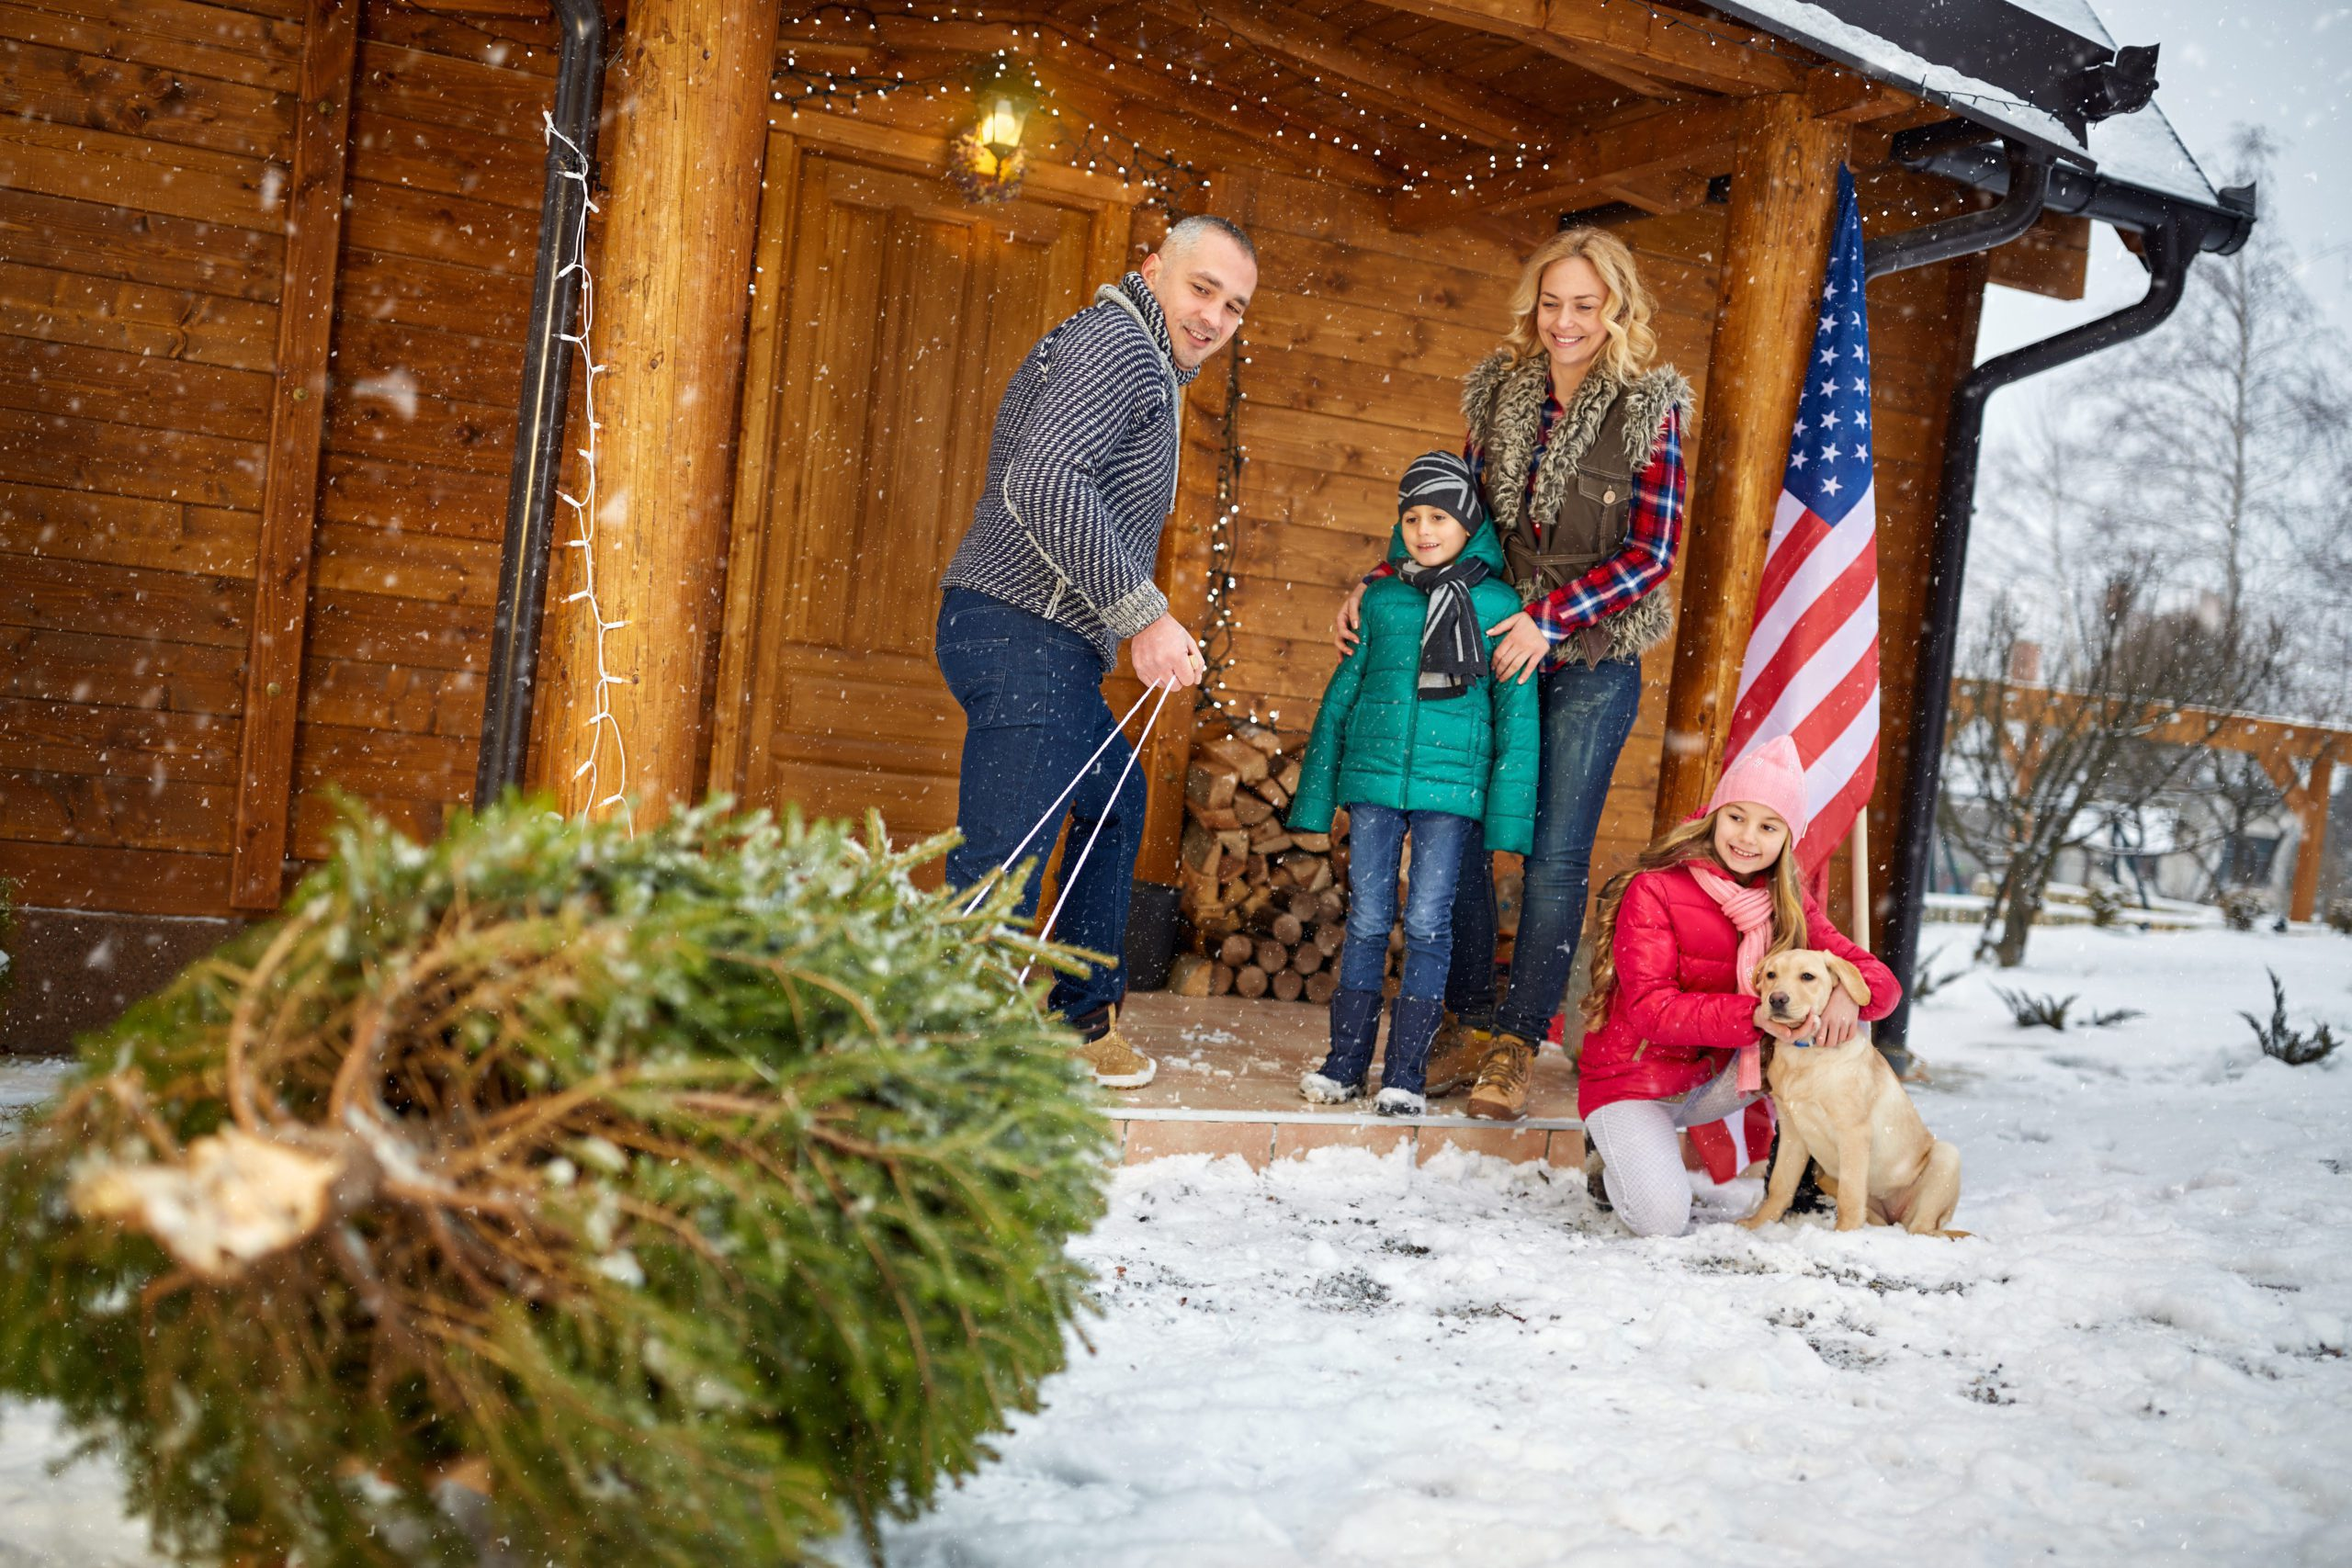 5 Easy Tips to Prepare Your Home for Christmas